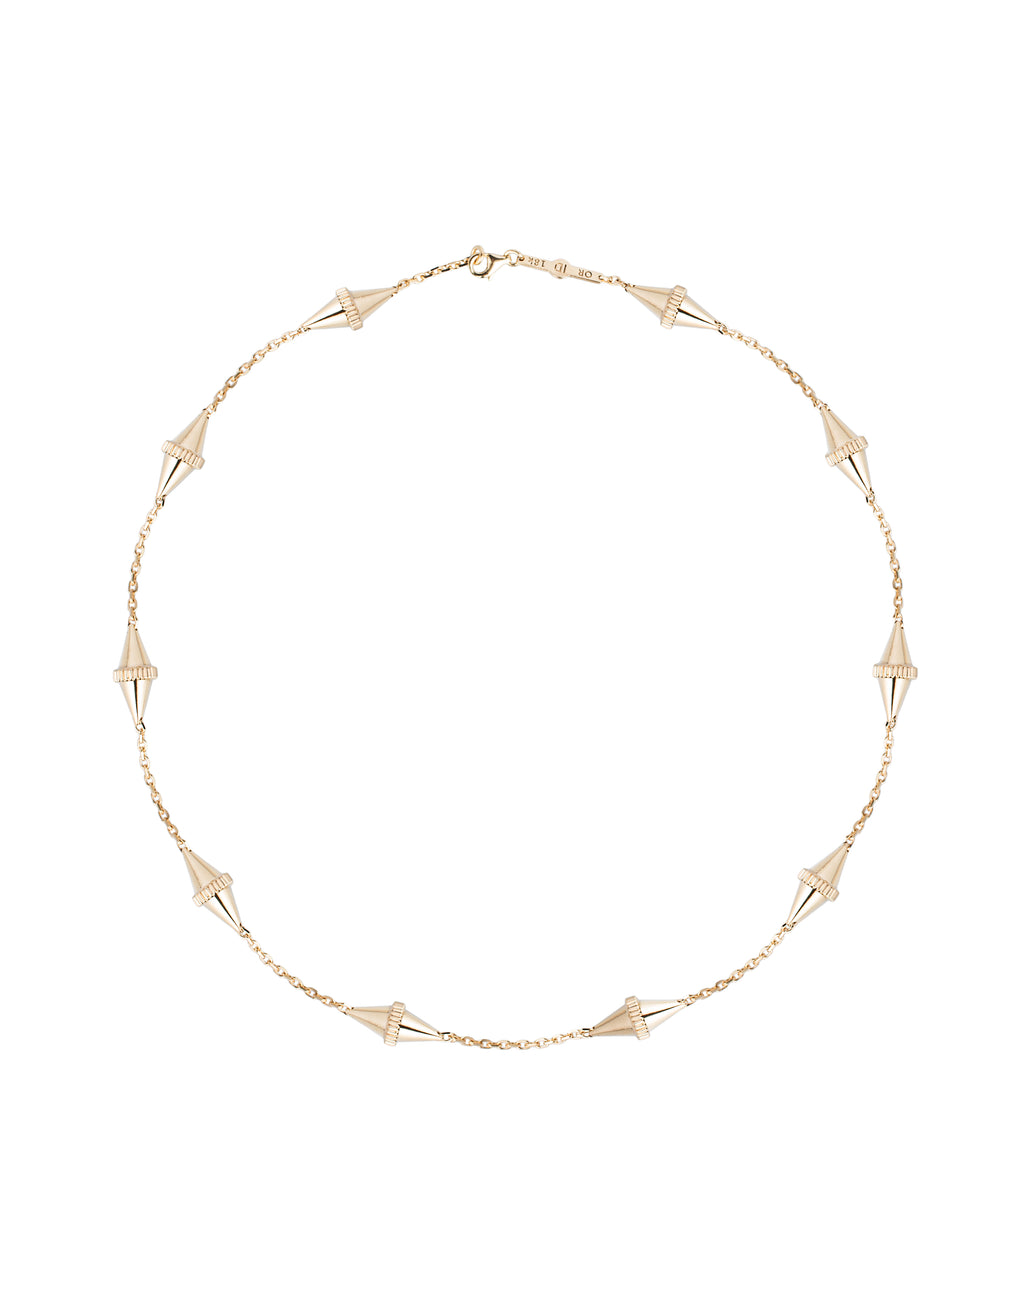 The Polli Long 10-BiCone Necklace